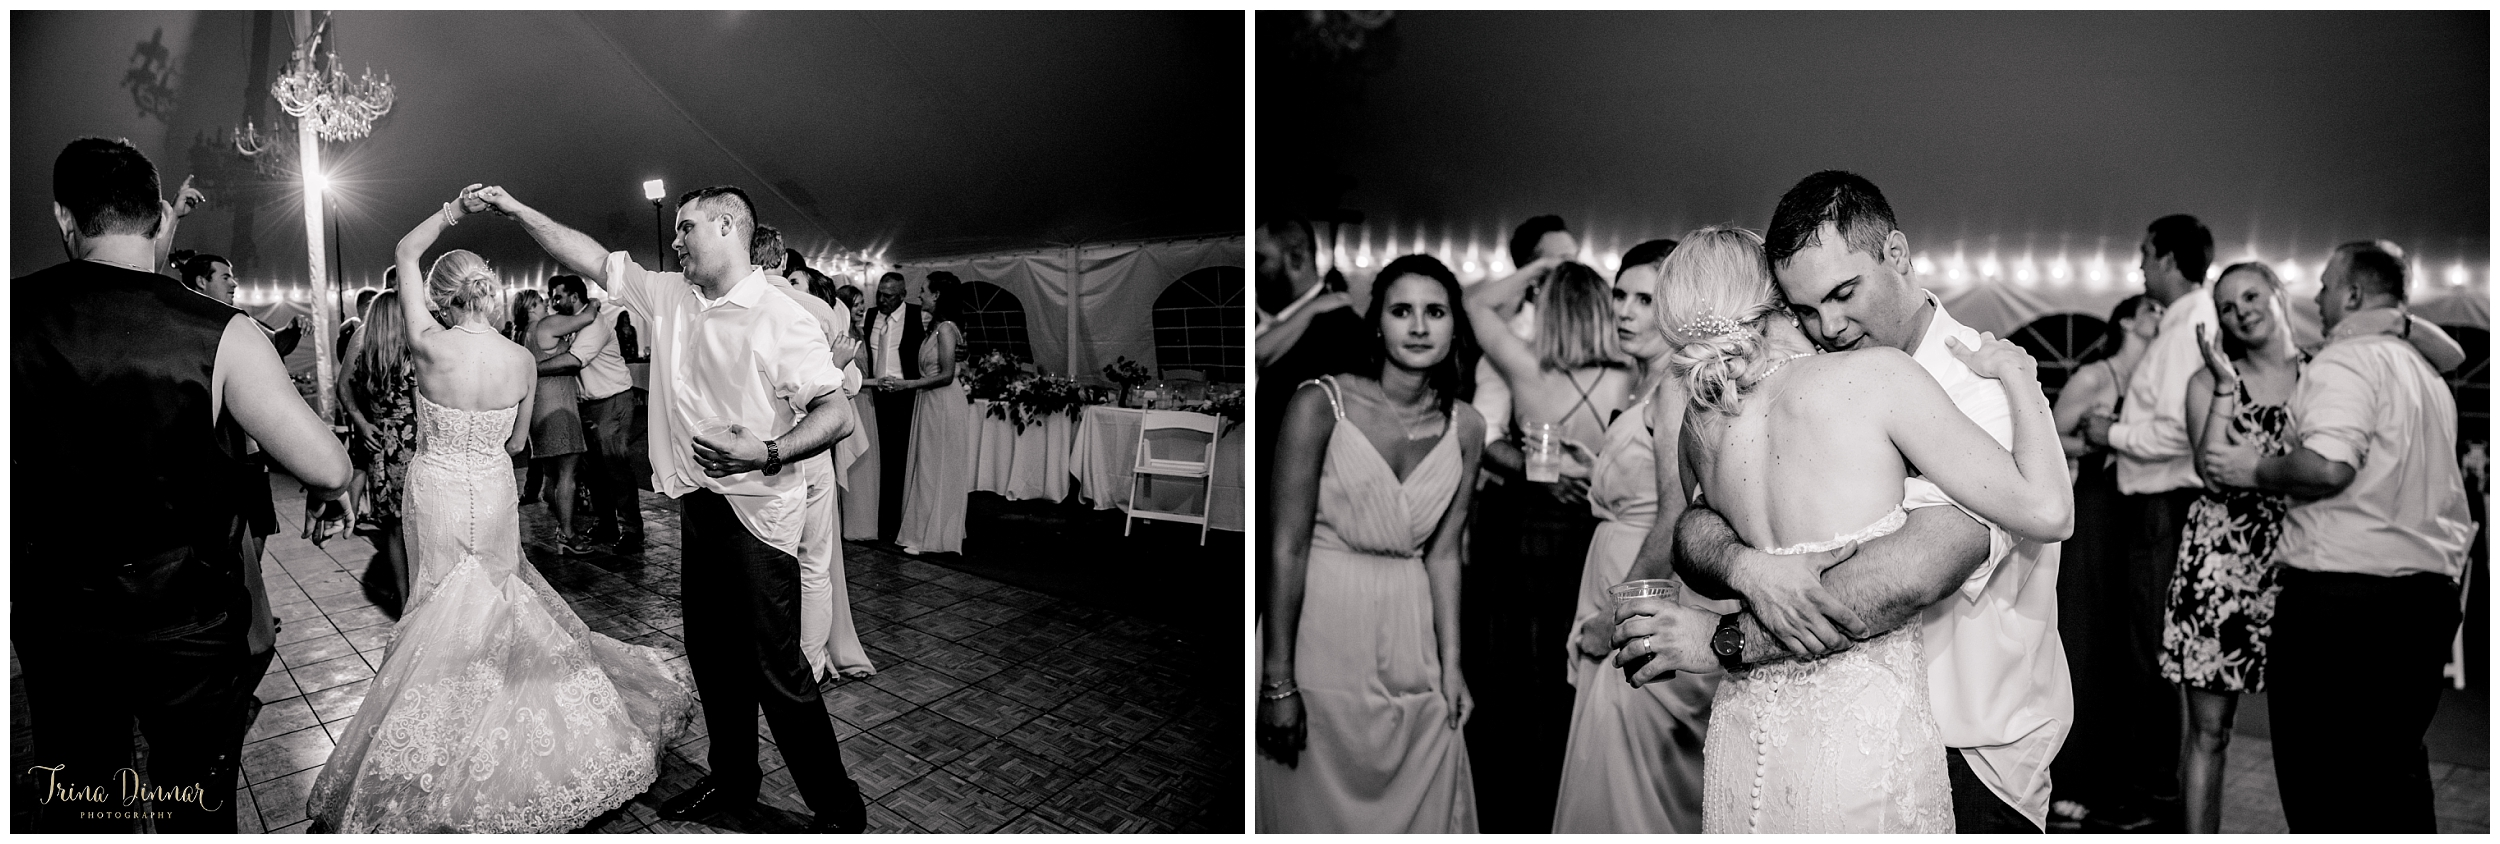 Ashton and John's last dance at their tented Maine wedding reception